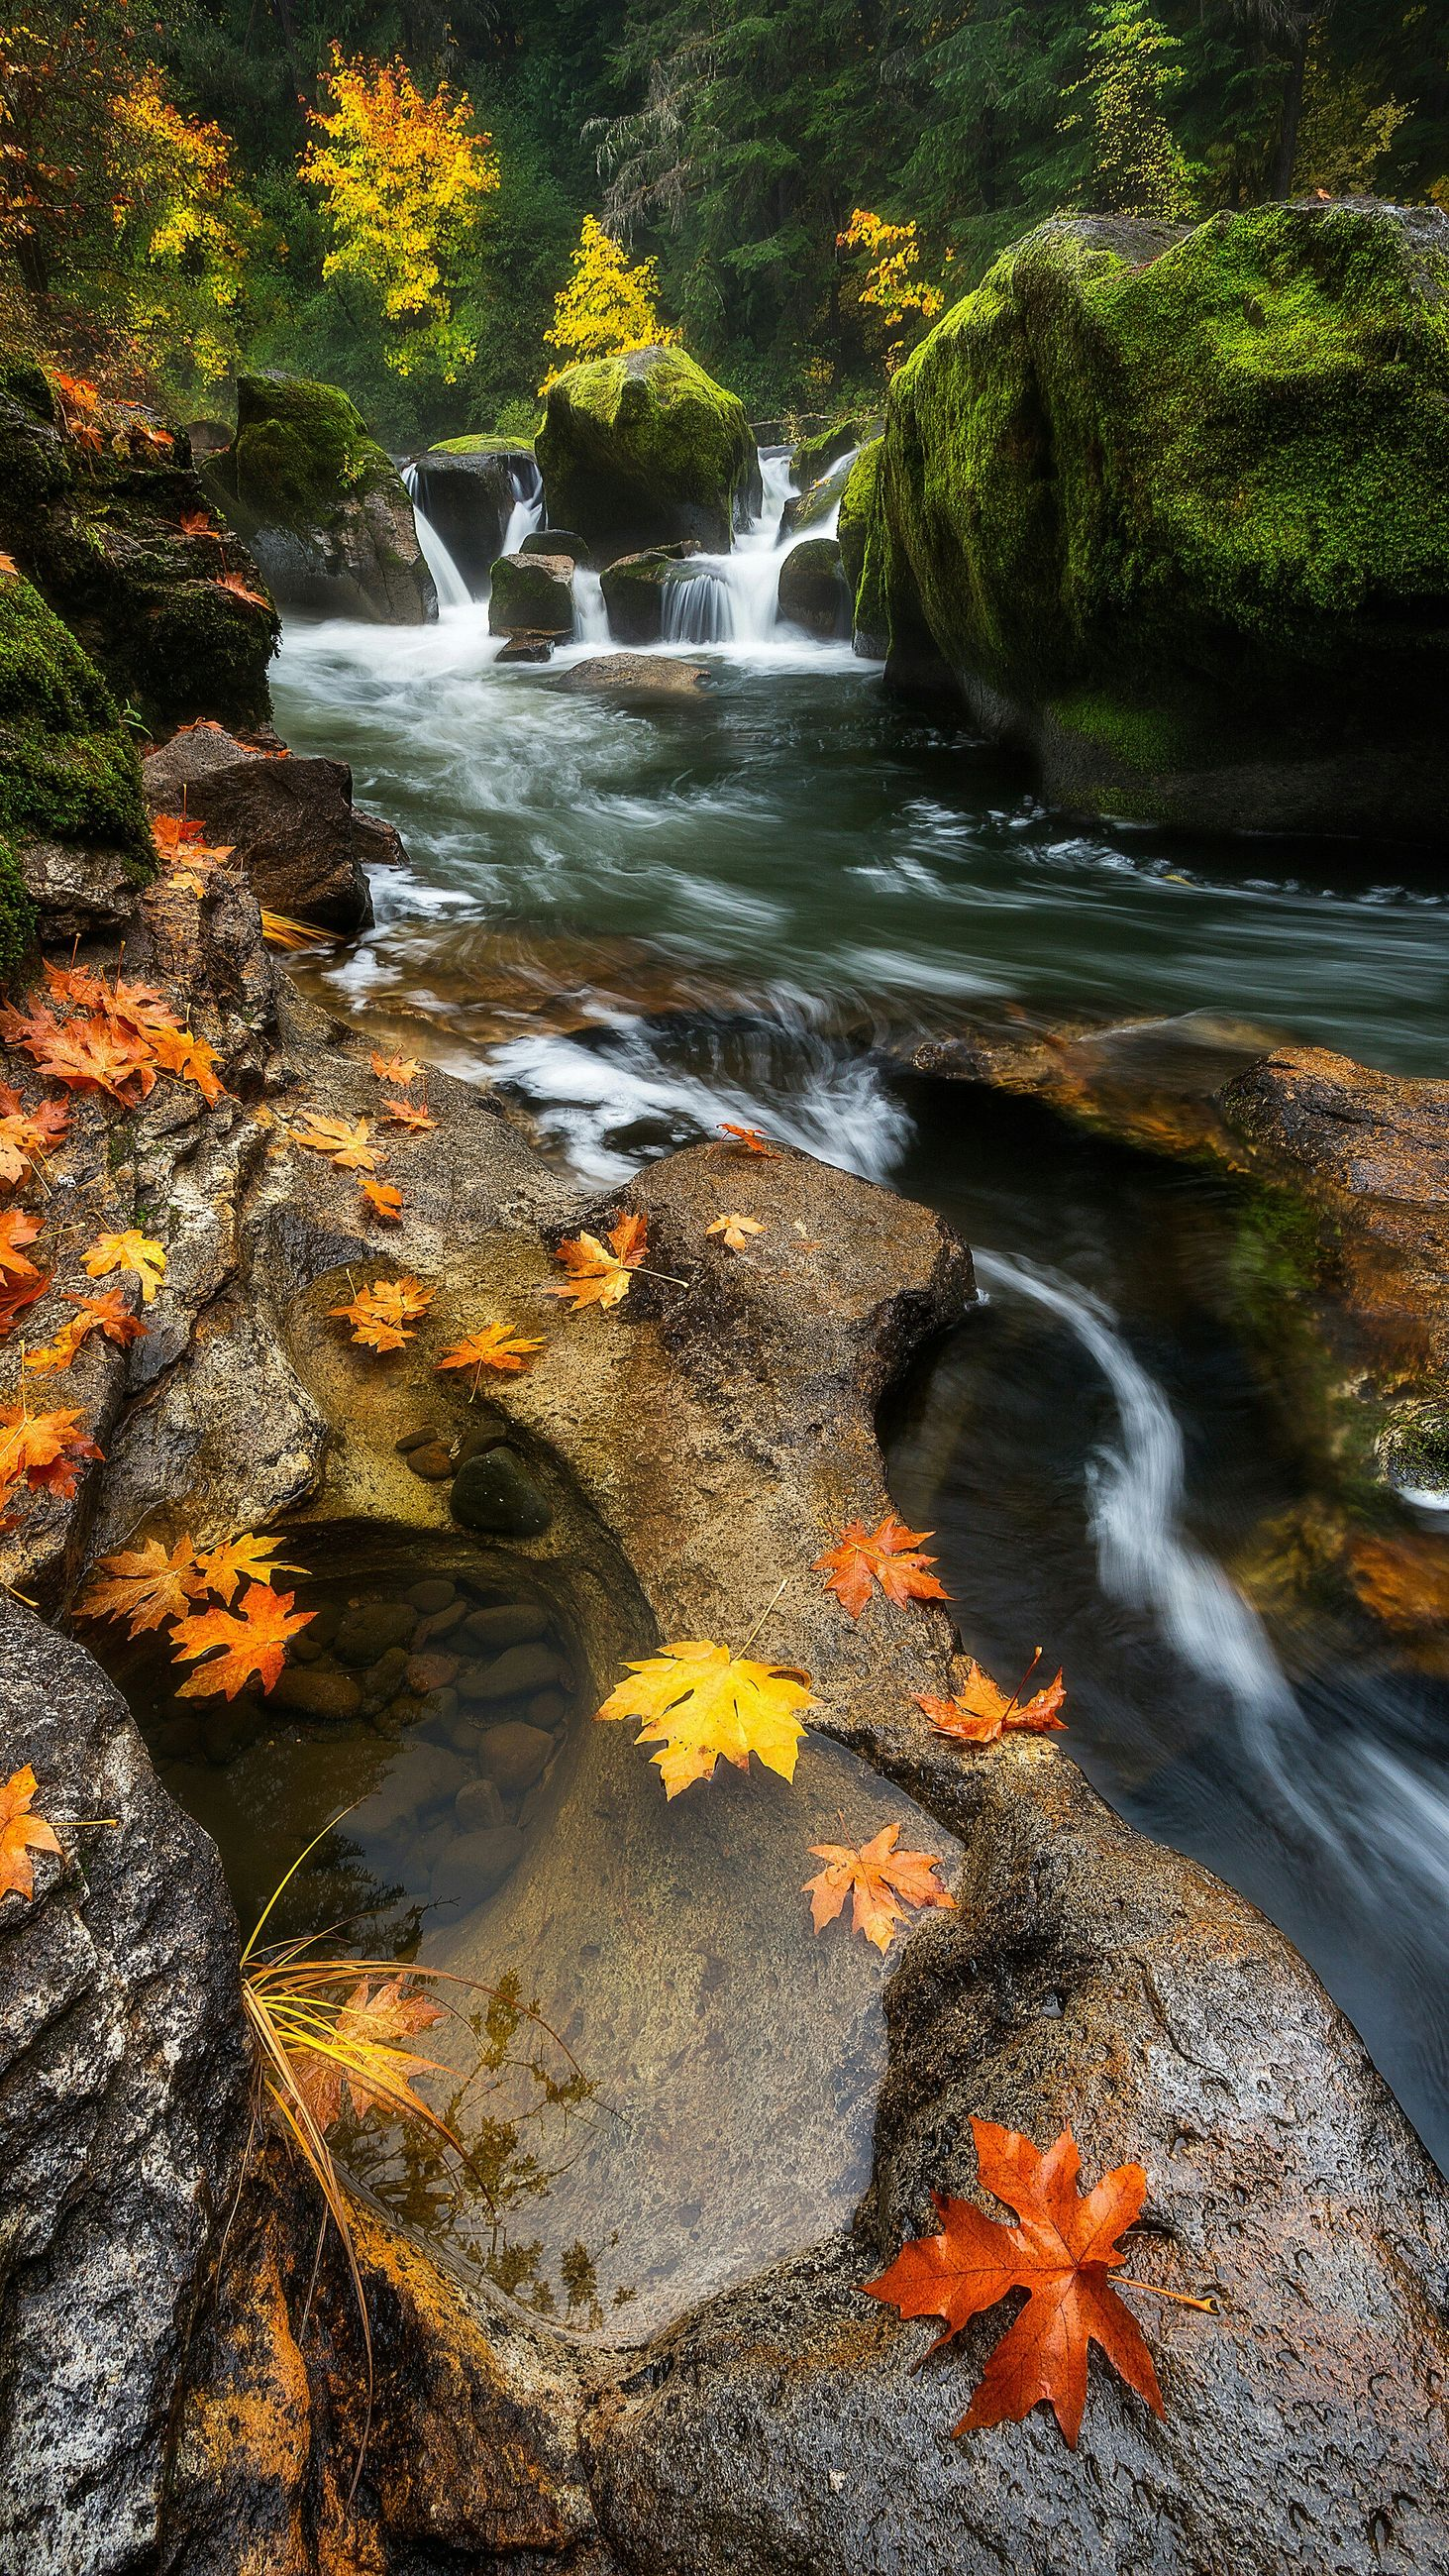 water, nature, beauty in nature, tranquility, tree, scenics, high angle view, growth, autumn, leaf, tranquil scene, plant, sunlight, flowing water, change, rock - object, stream, yellow, outdoors, day